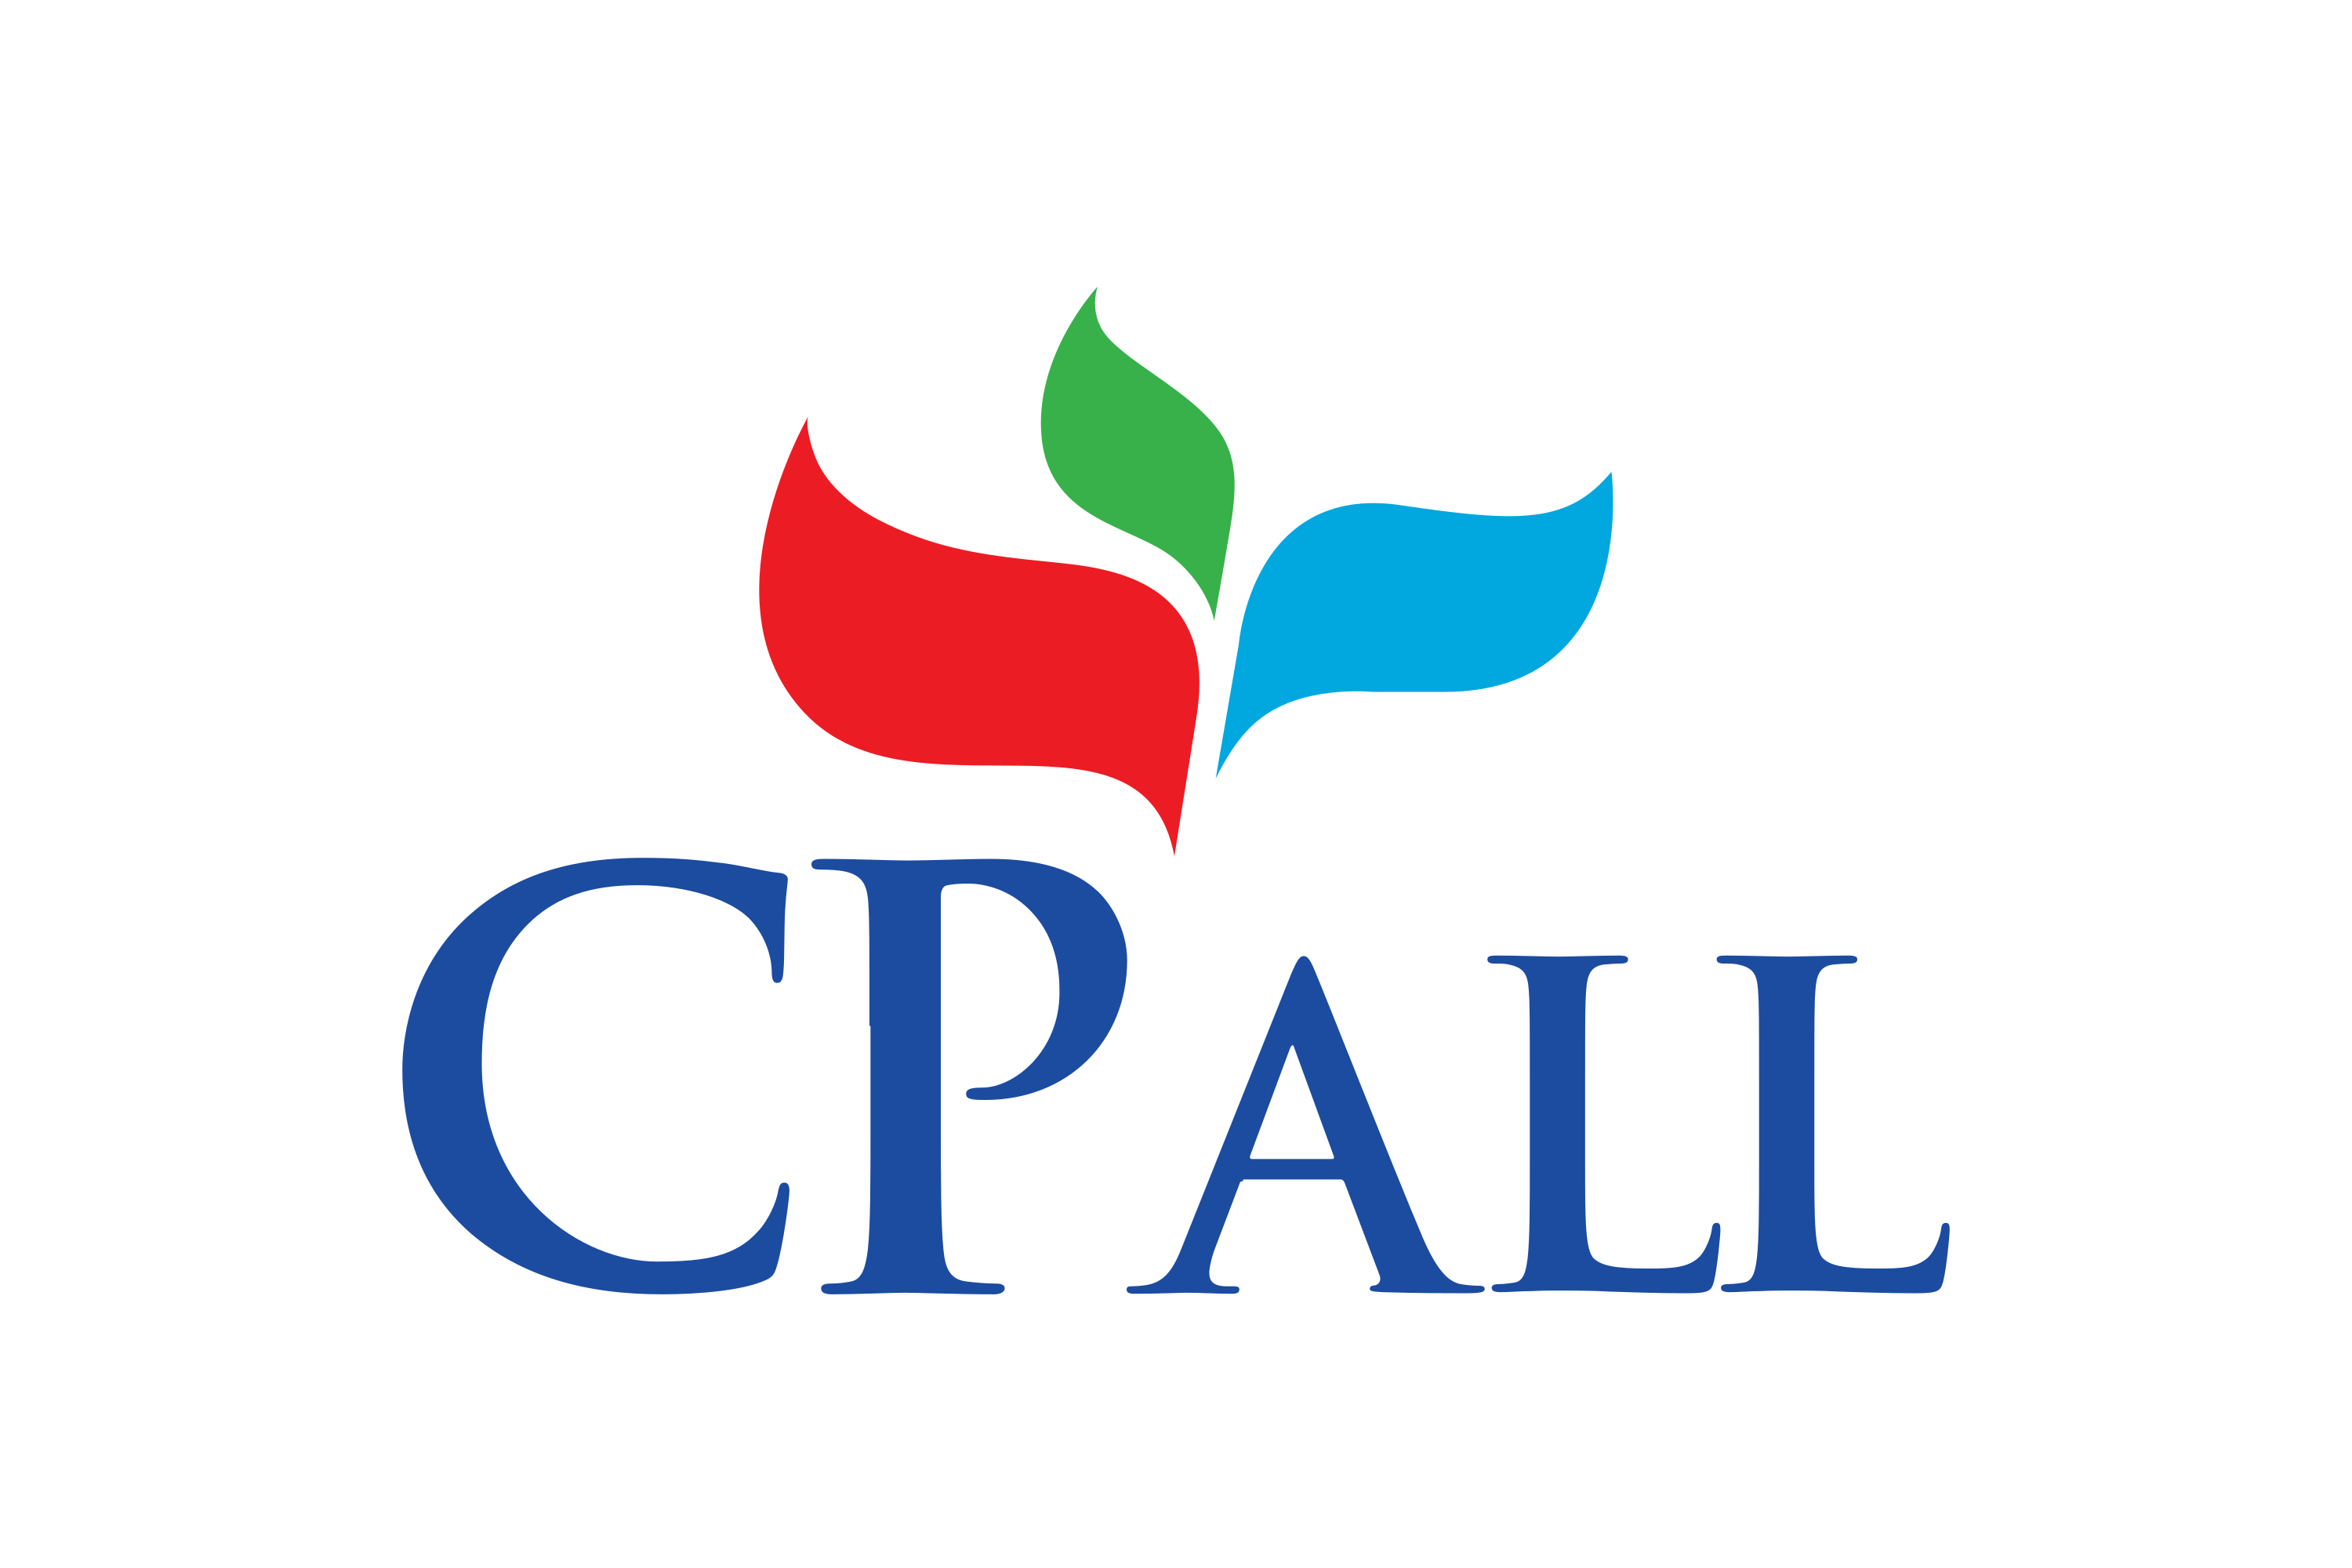 Download CP ALL Logo in SVG Vector or PNG File Format - Logo.wine